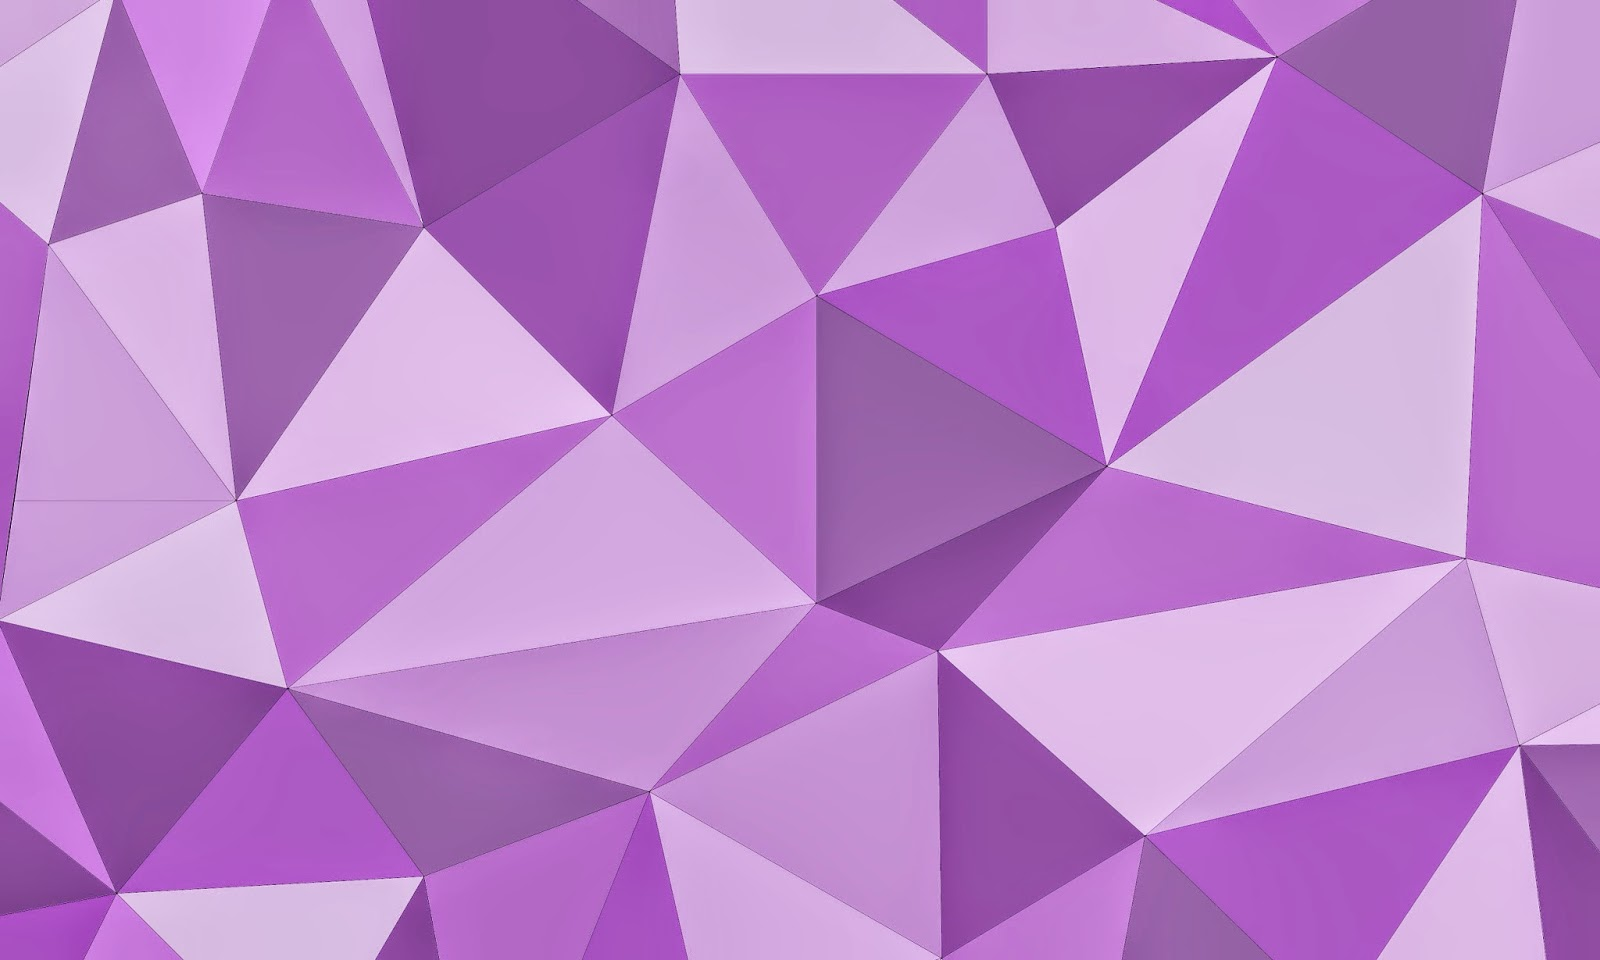 triangle abstract wallpapers hd - photo #37